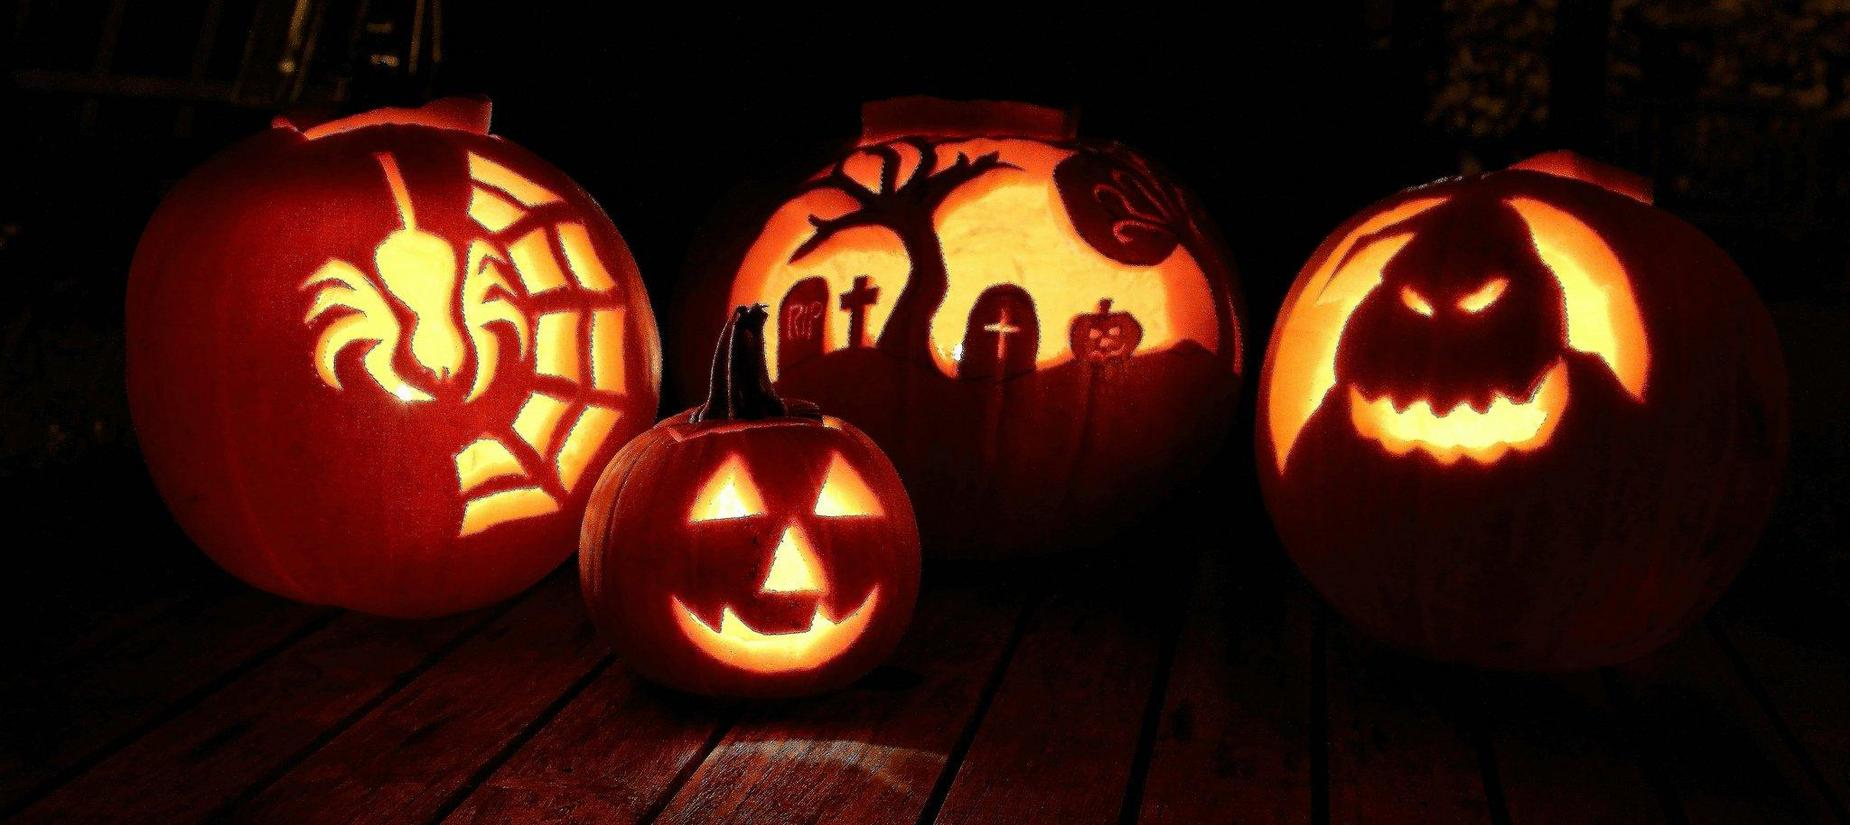 4 pumpkins carved one with spider, graveyard, ghost, smiley face